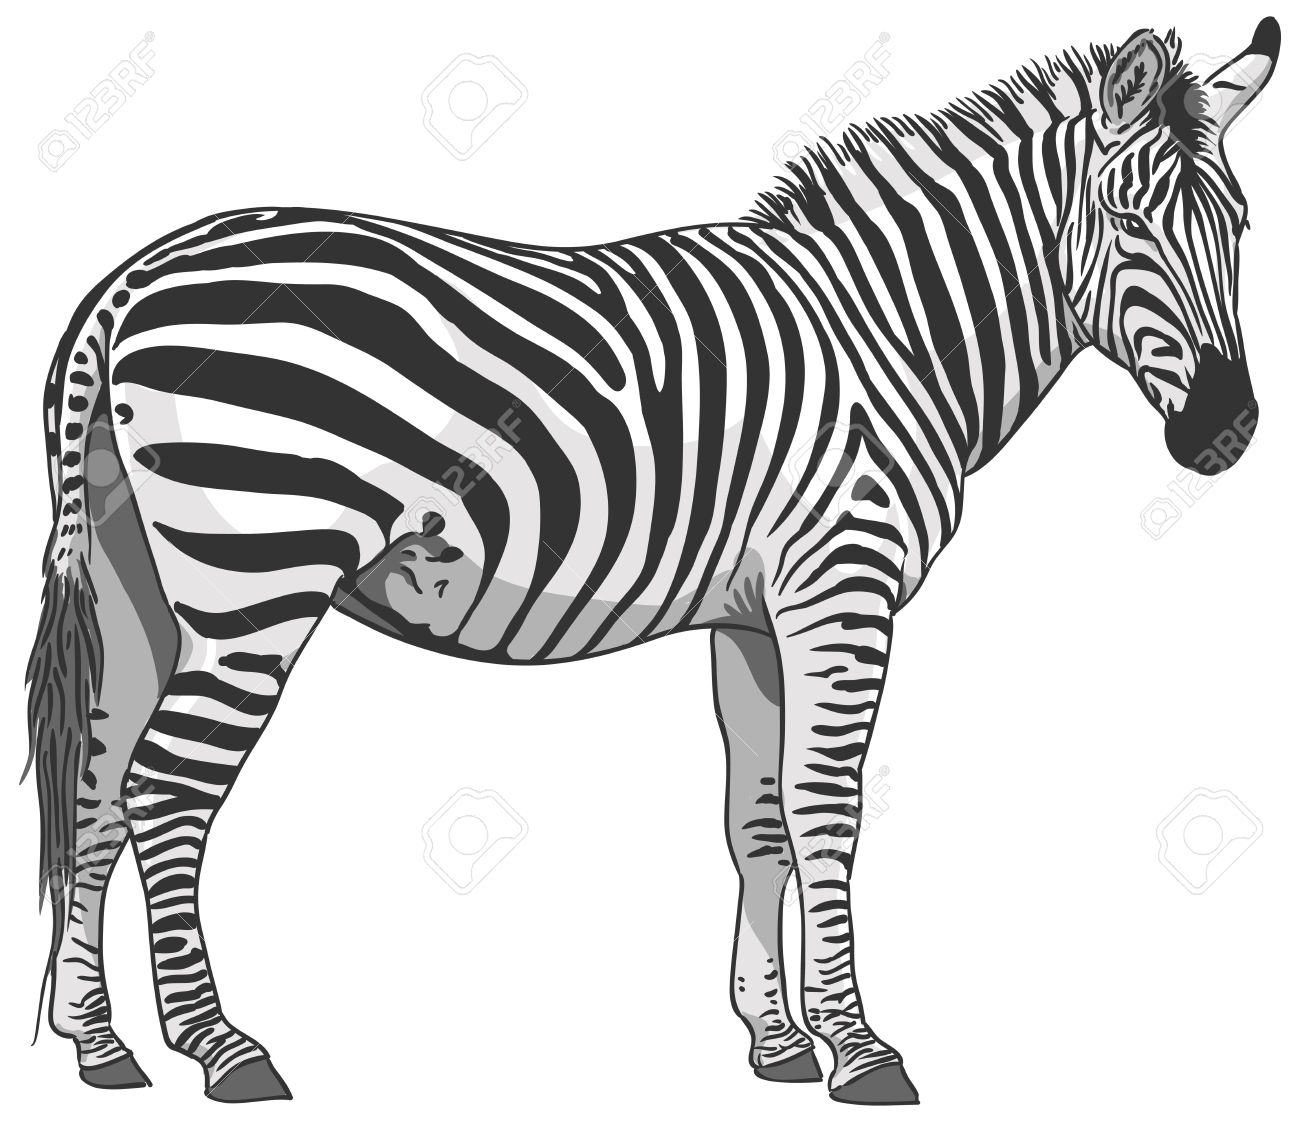 Isolated Plains Zebra Illustration Royalty Free Cliparts, Vectors.